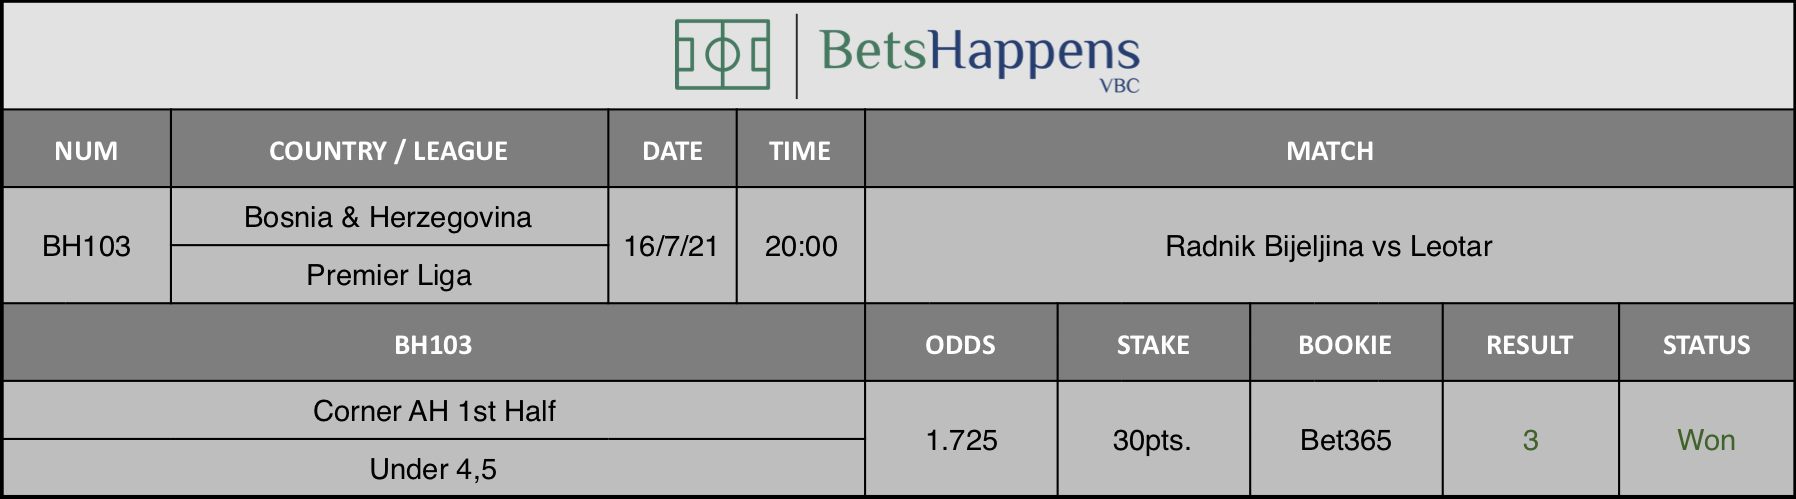 Results of our advice for the Radnik Bijeljina vs Leotar match in which Corner AH 1st Half Under 4,5 is recommended.